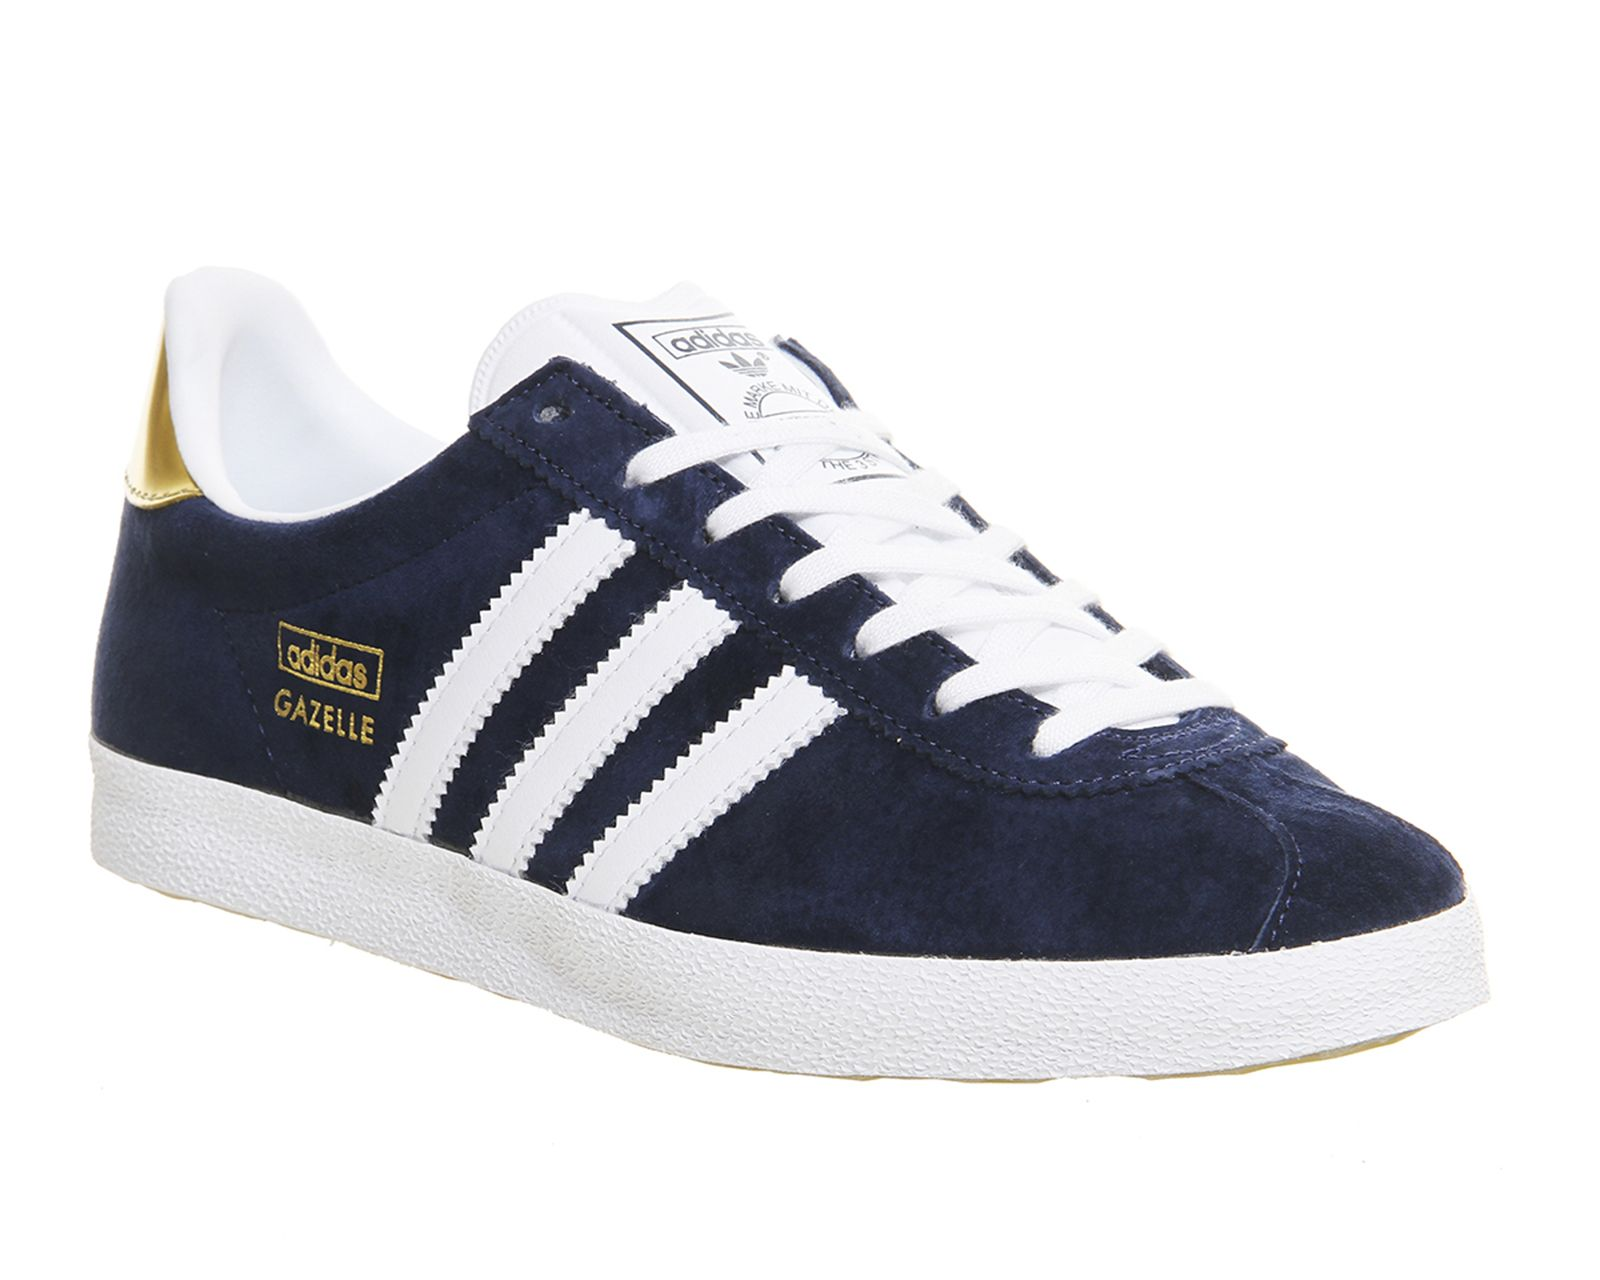 Adidas Gazelle Og Trainers Night Indigo White Metallic Gold - junior